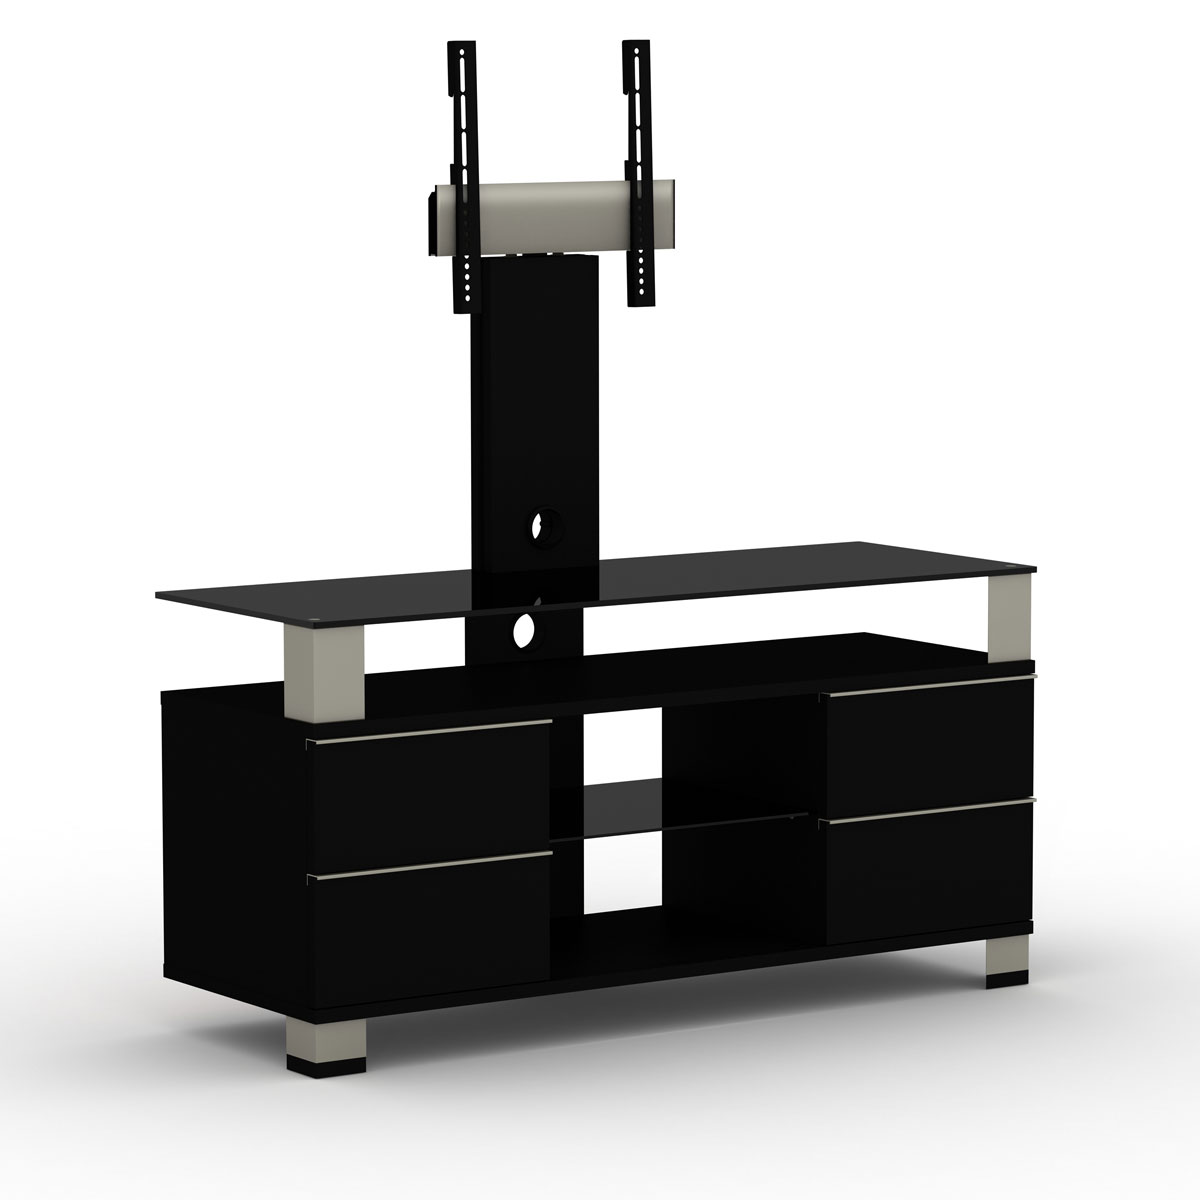 elmob pone pn 120 02f noir meuble tv elmob sur. Black Bedroom Furniture Sets. Home Design Ideas